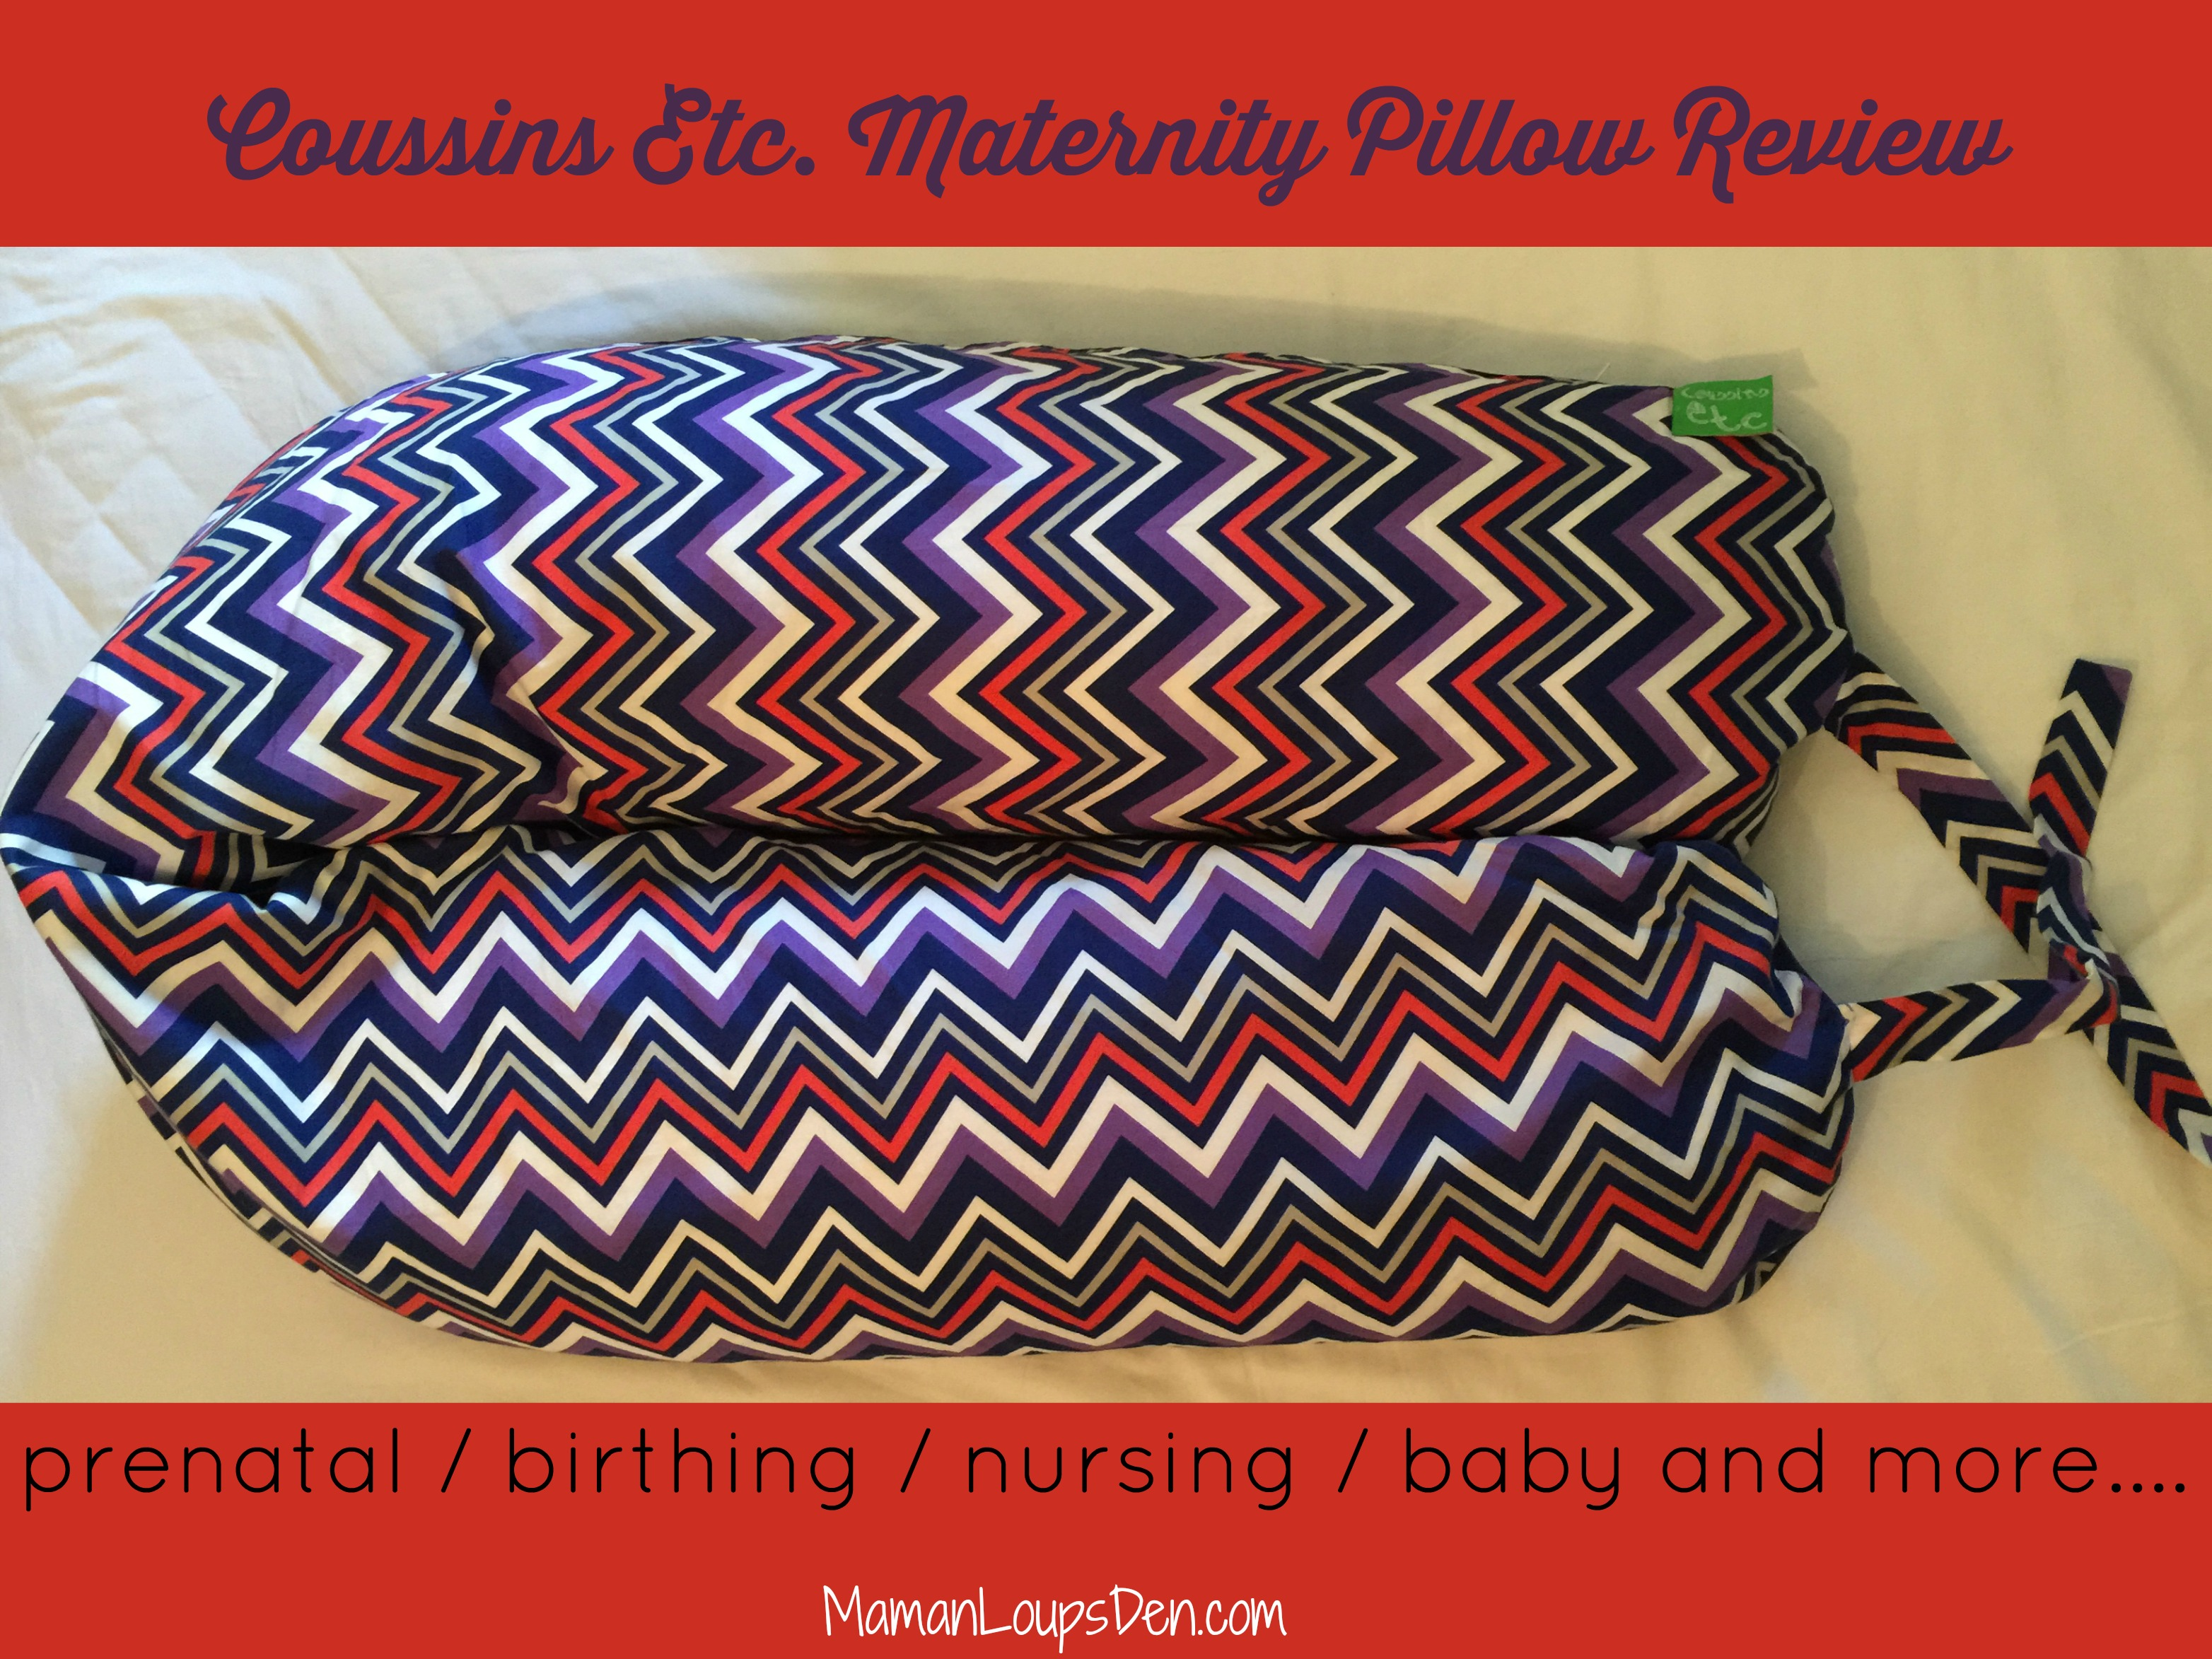 Coussins Etc Maternity Body Pillow Review: the only pillow you'll need for pregnancy, delivery and postpartum! Great for sleeping, nursing, yoga and baby play time. Made in Quebec, Canada.